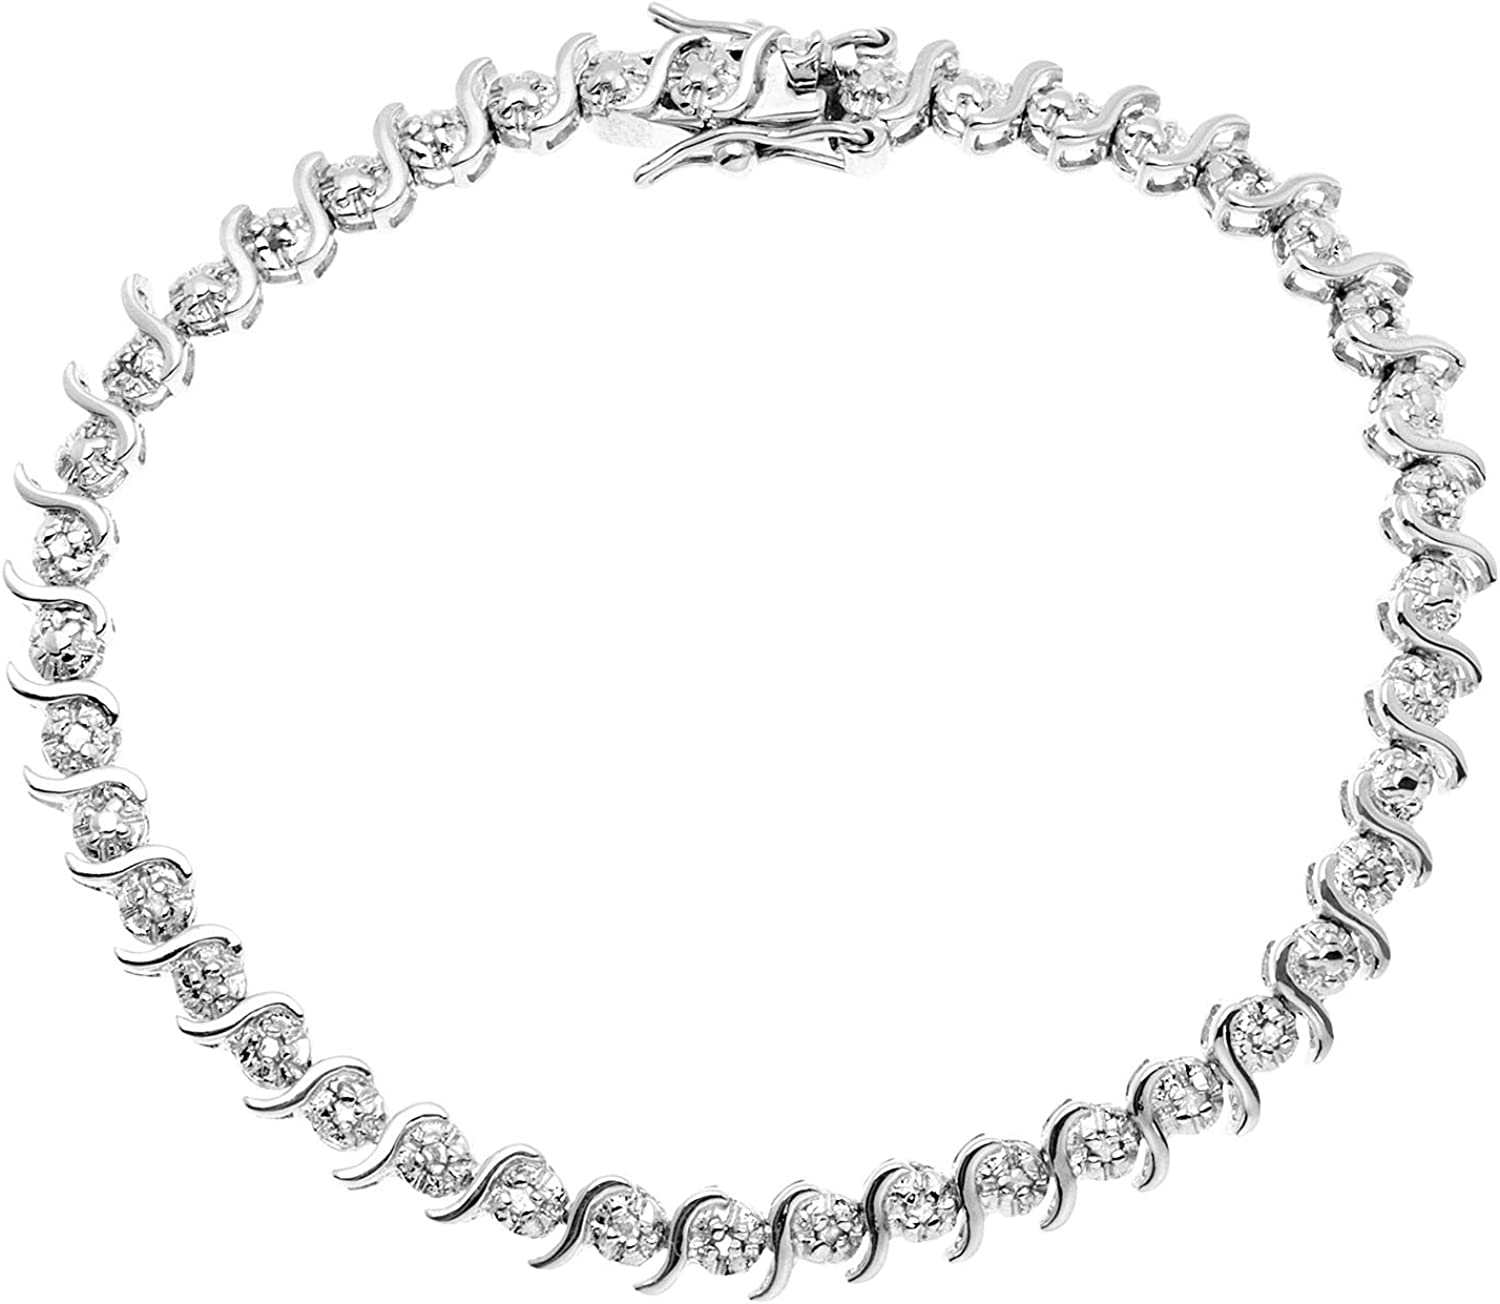 JewelExclusive Sterling Silver 1 Popular shop is the National products lowest price challenge 4 cttw Natural Round-Cut Diamon